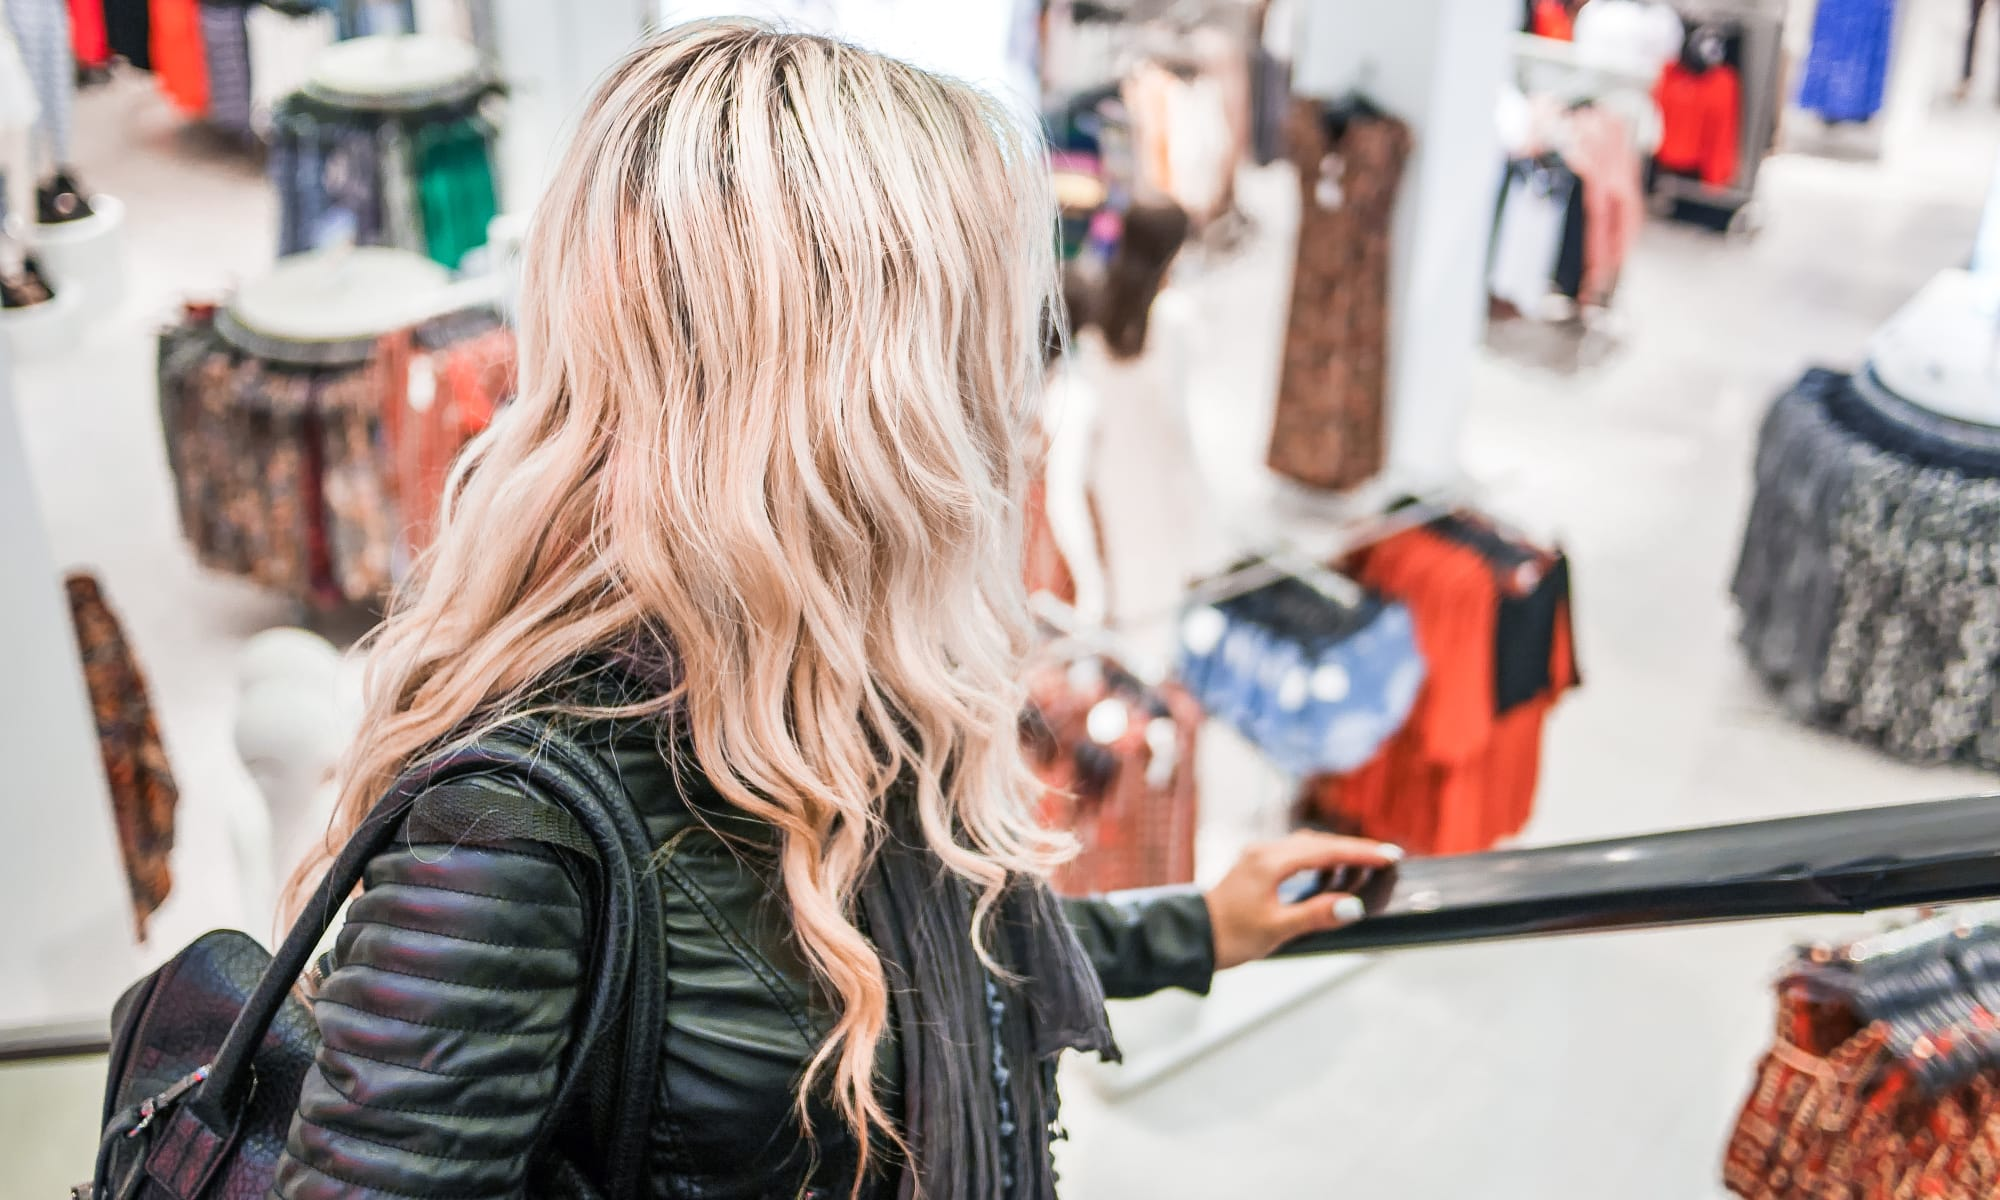 blonde woman shopping at a clothing store